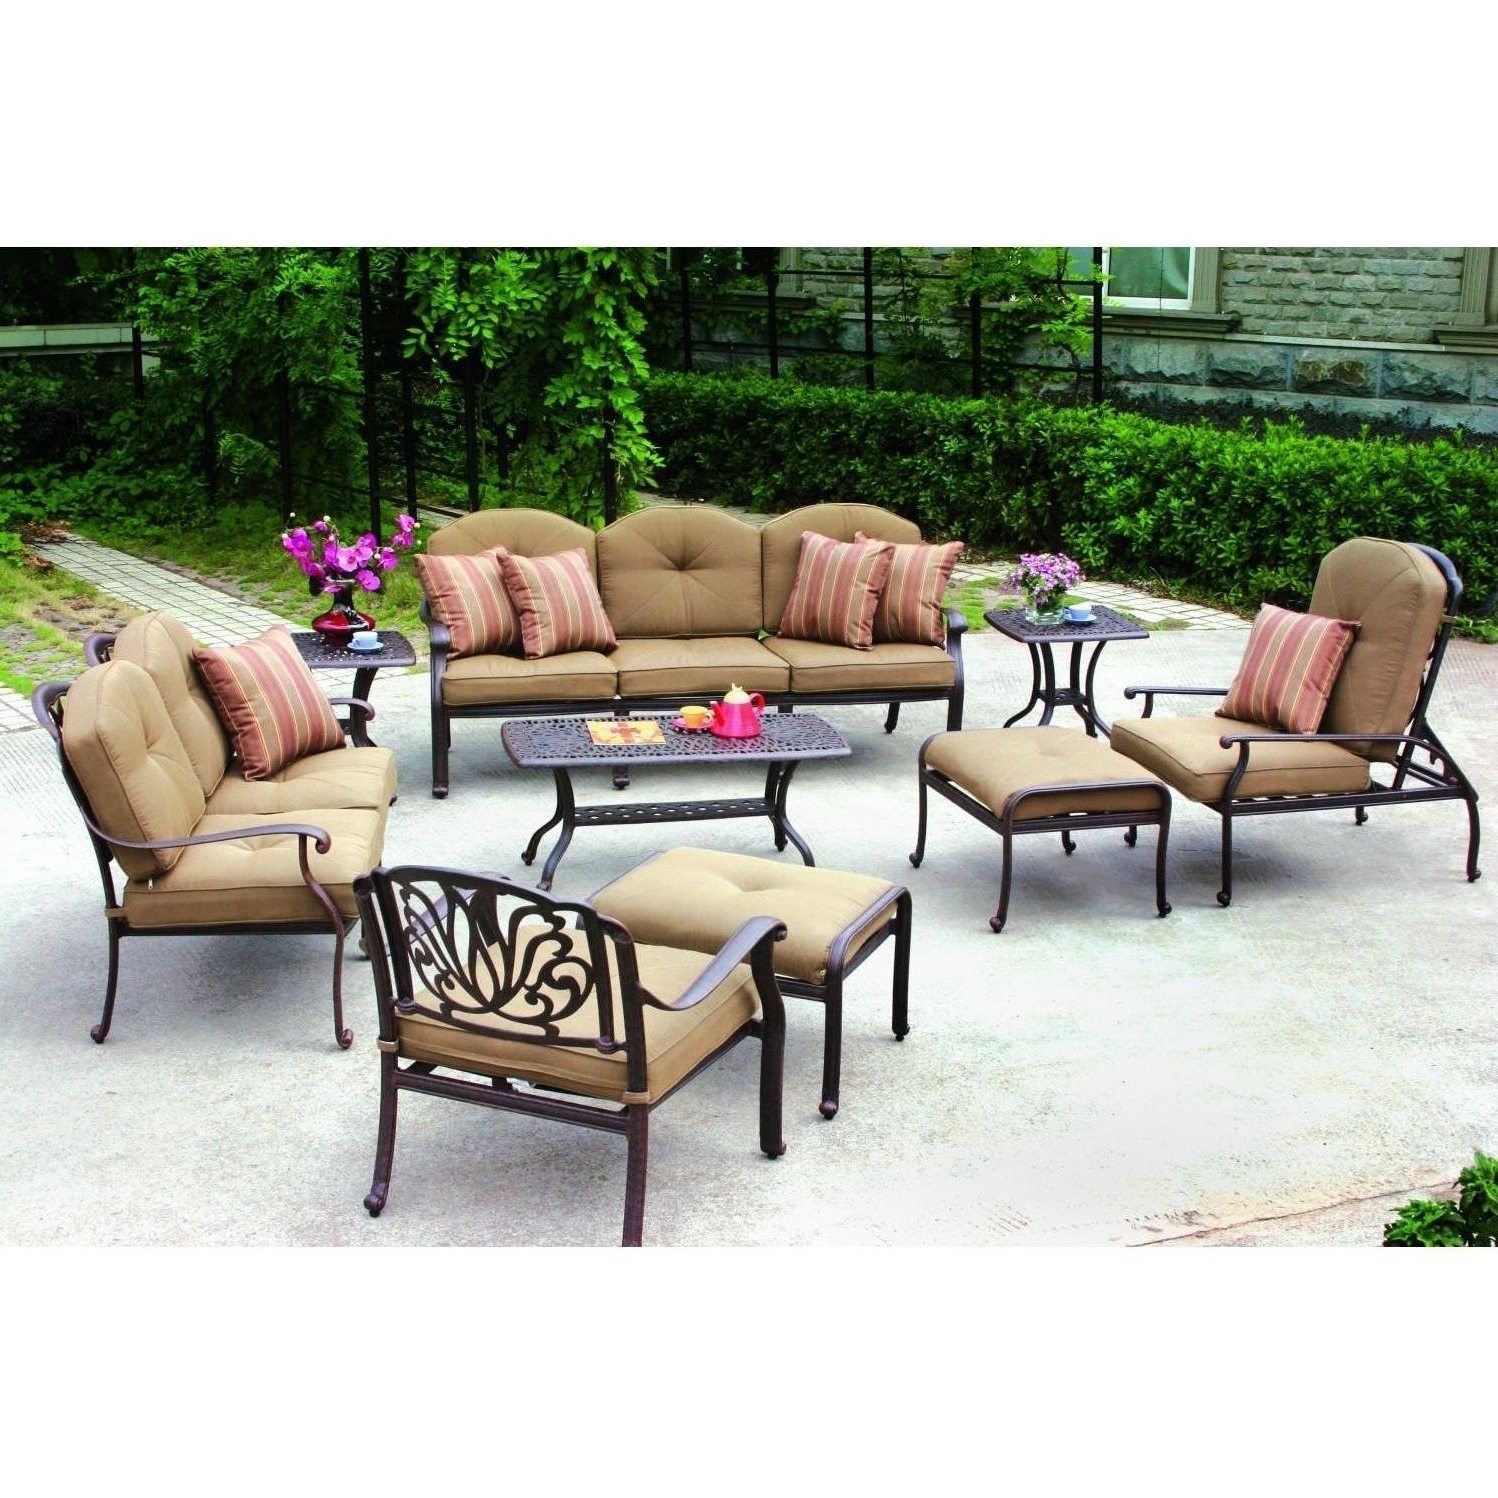 Current Outdoor : Best Deals On Patio Furniture Outdoor Wood Dining Table Regarding Black Aluminum Patio Conversation Sets (View 6 of 20)